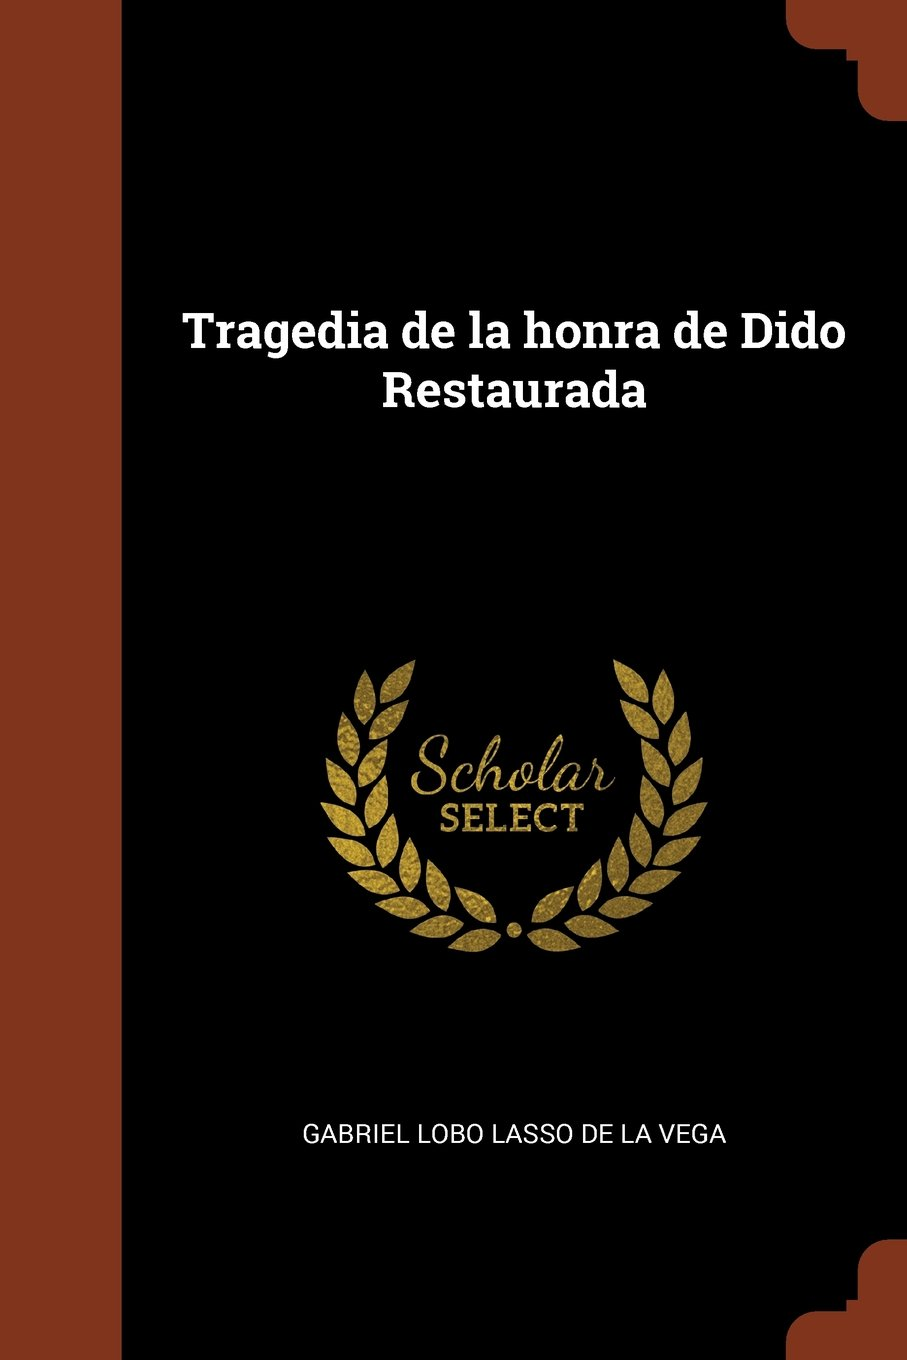 Tragedia de la honra de Dido Restaurada Tapa blanda – 25 may 2017 Gabriel Lobo Lasso de la Vega Pinnacle Press 1374926019 Drama Texts